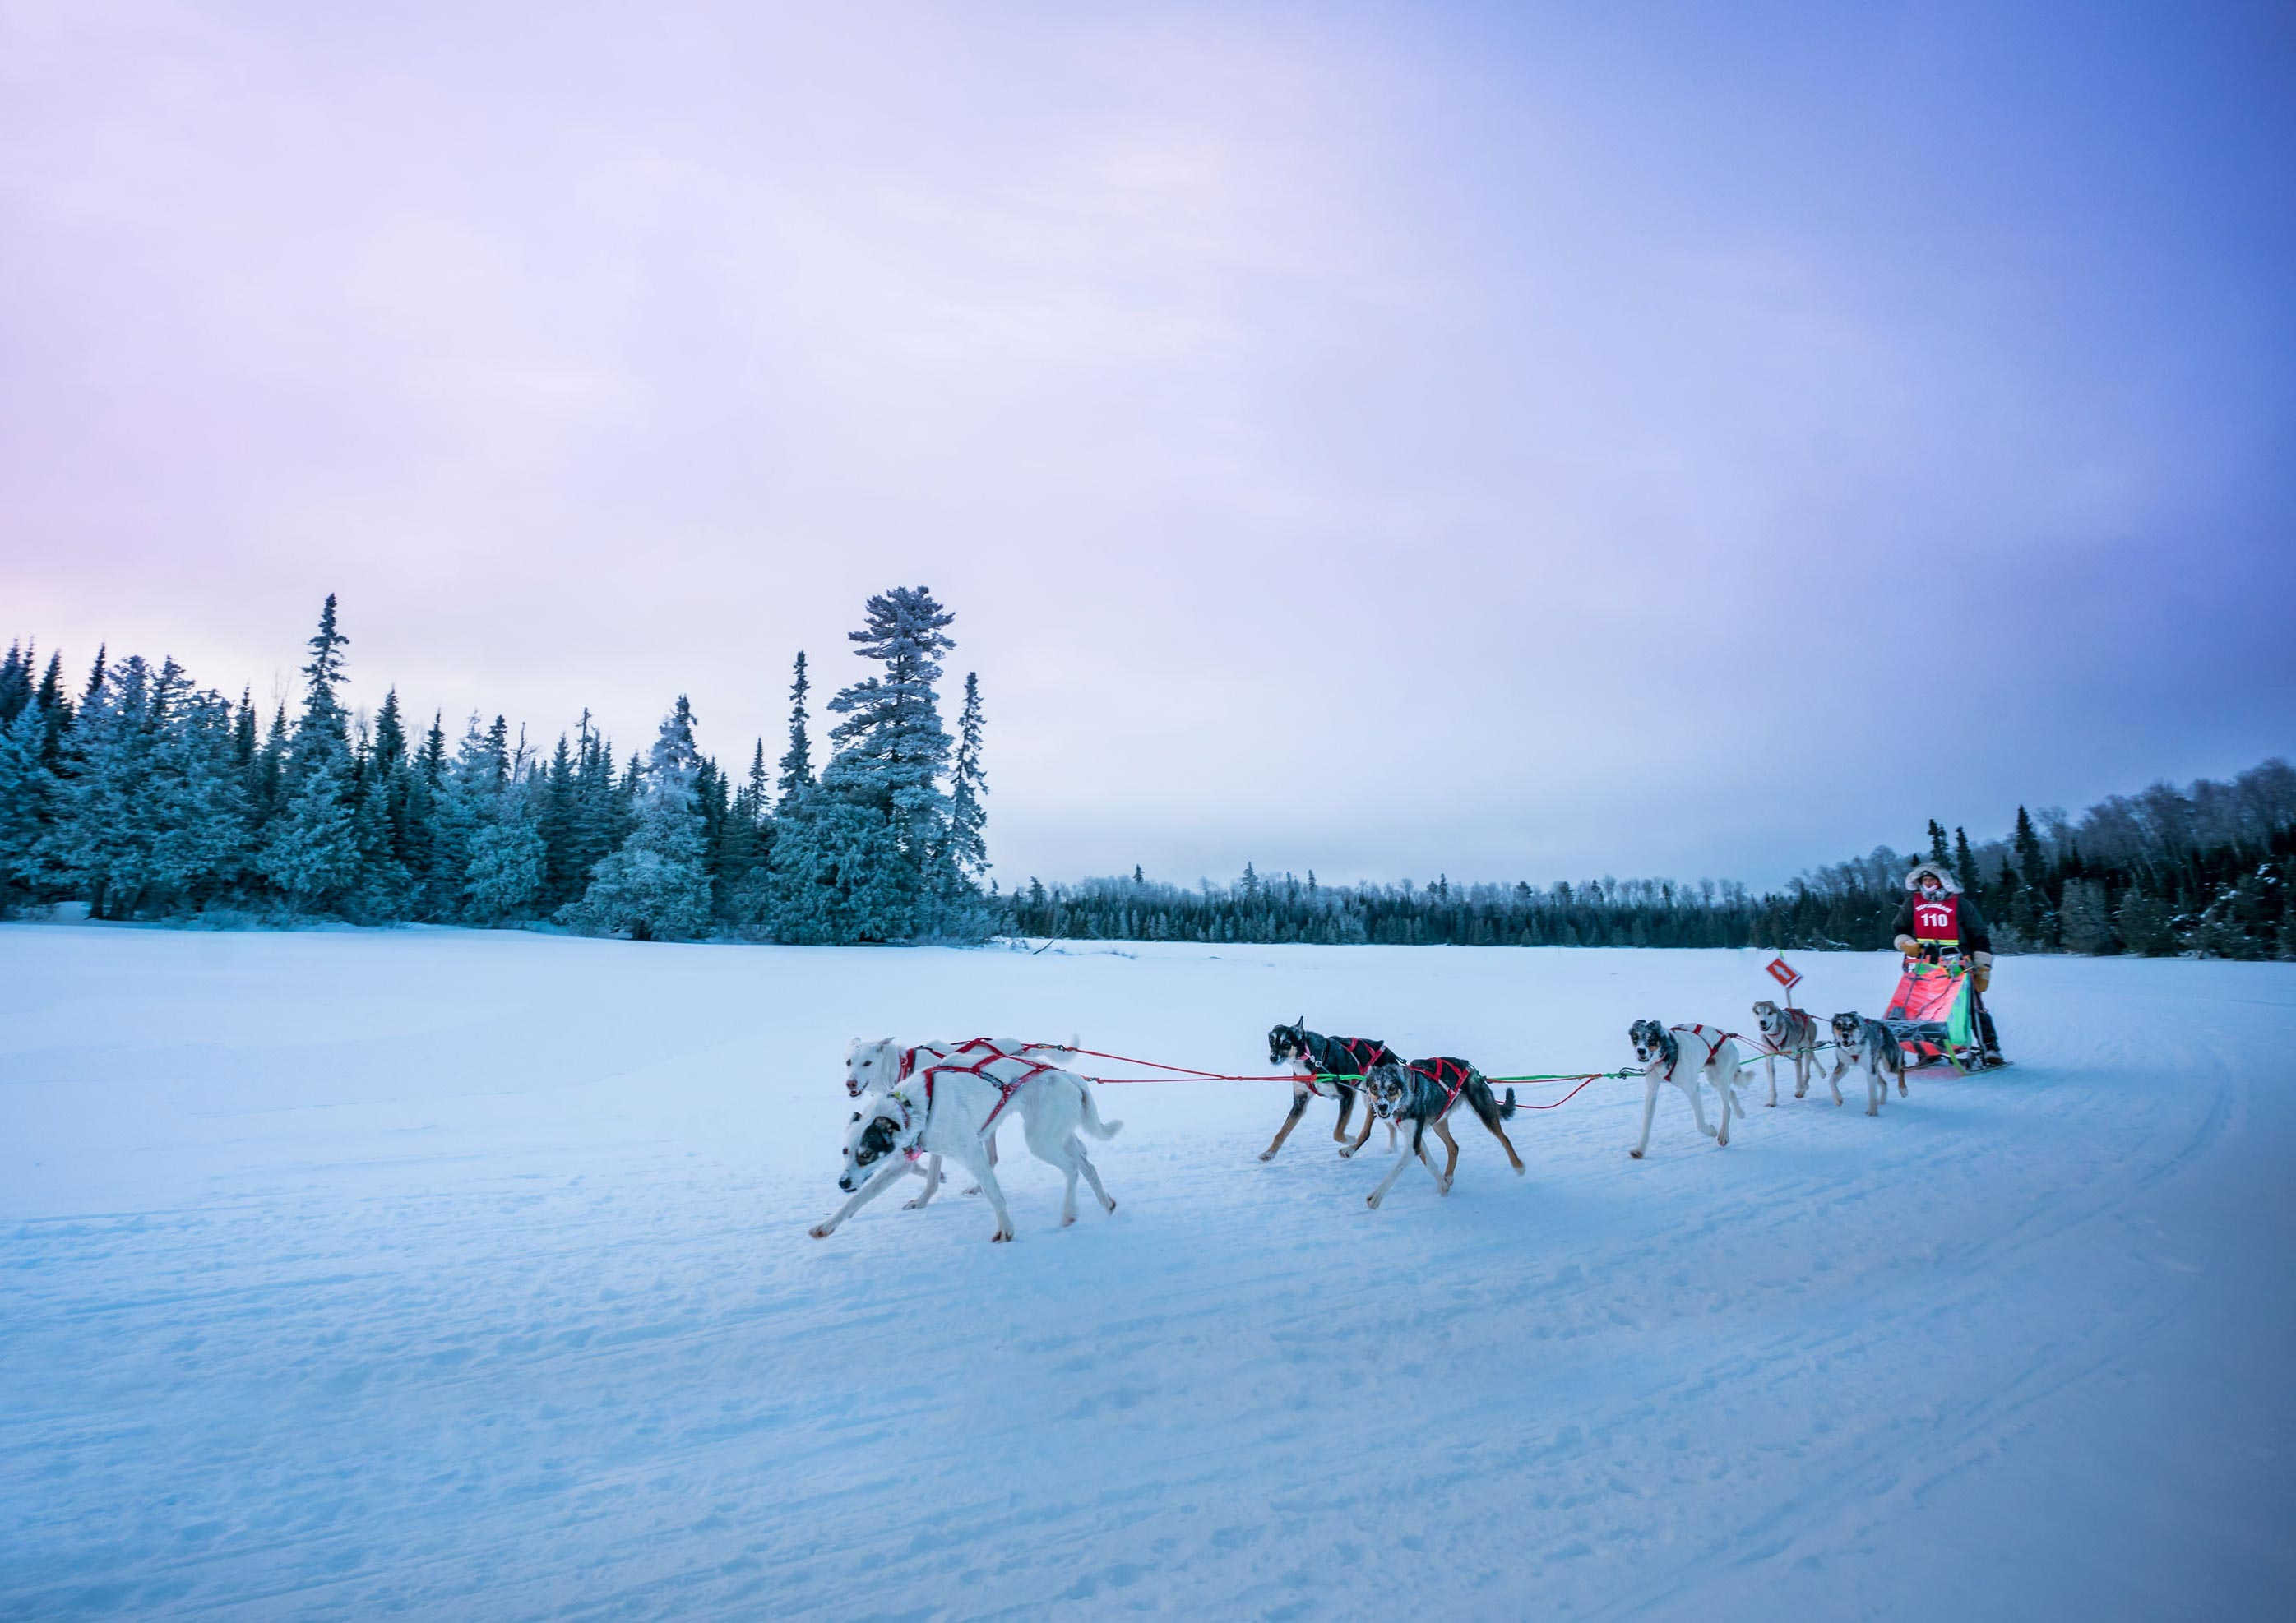 Beargrease race